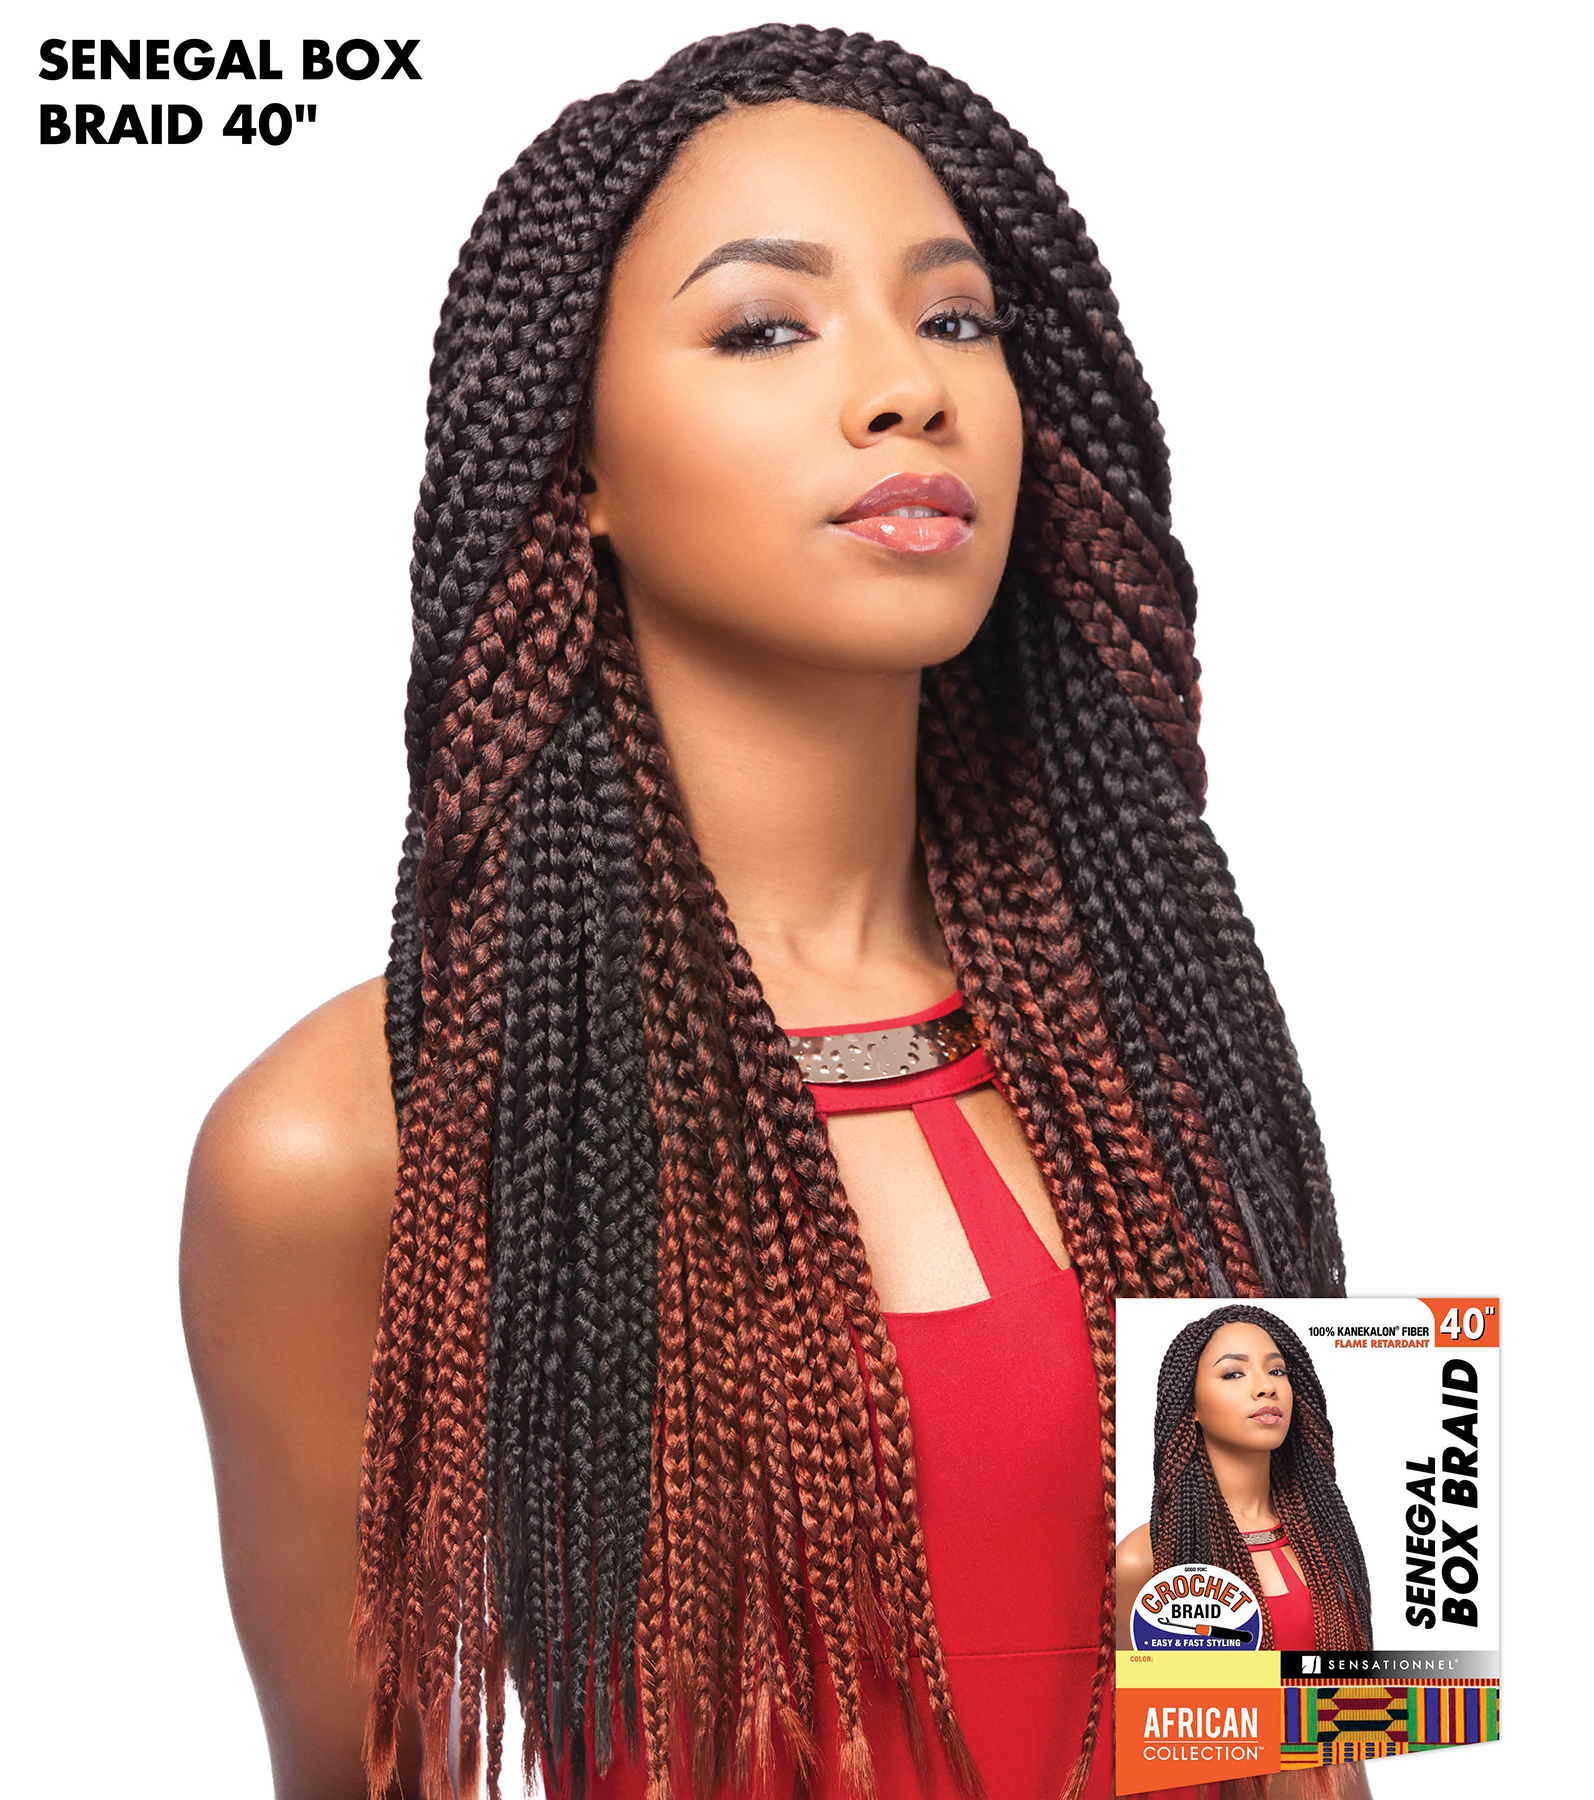 Crochet Box Braids Wig : SENEGAL BOX BRAID 40 - SENSATIONNEL CROCHET BRAIDING HAIR EXTENSION ...